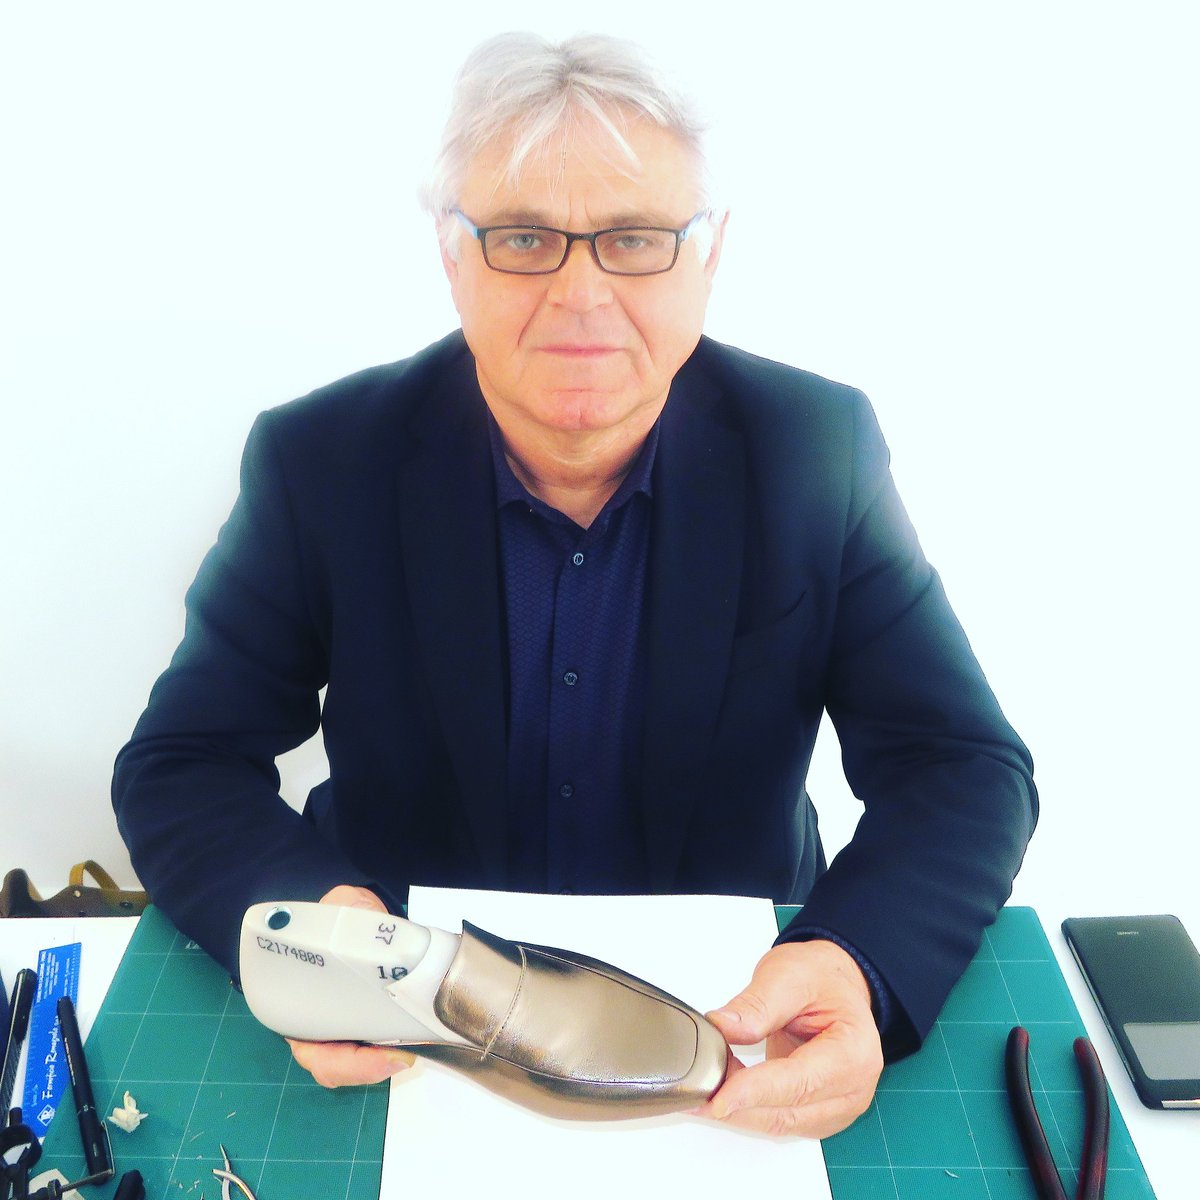 #Mypix #MaurizioZallocllo #craftsman who #turns #designers #ideas into #footwear #realities 4 @HobbsVIP at their #factory in #Giorgio #Italy<br>http://pic.twitter.com/ipsrl3uKON